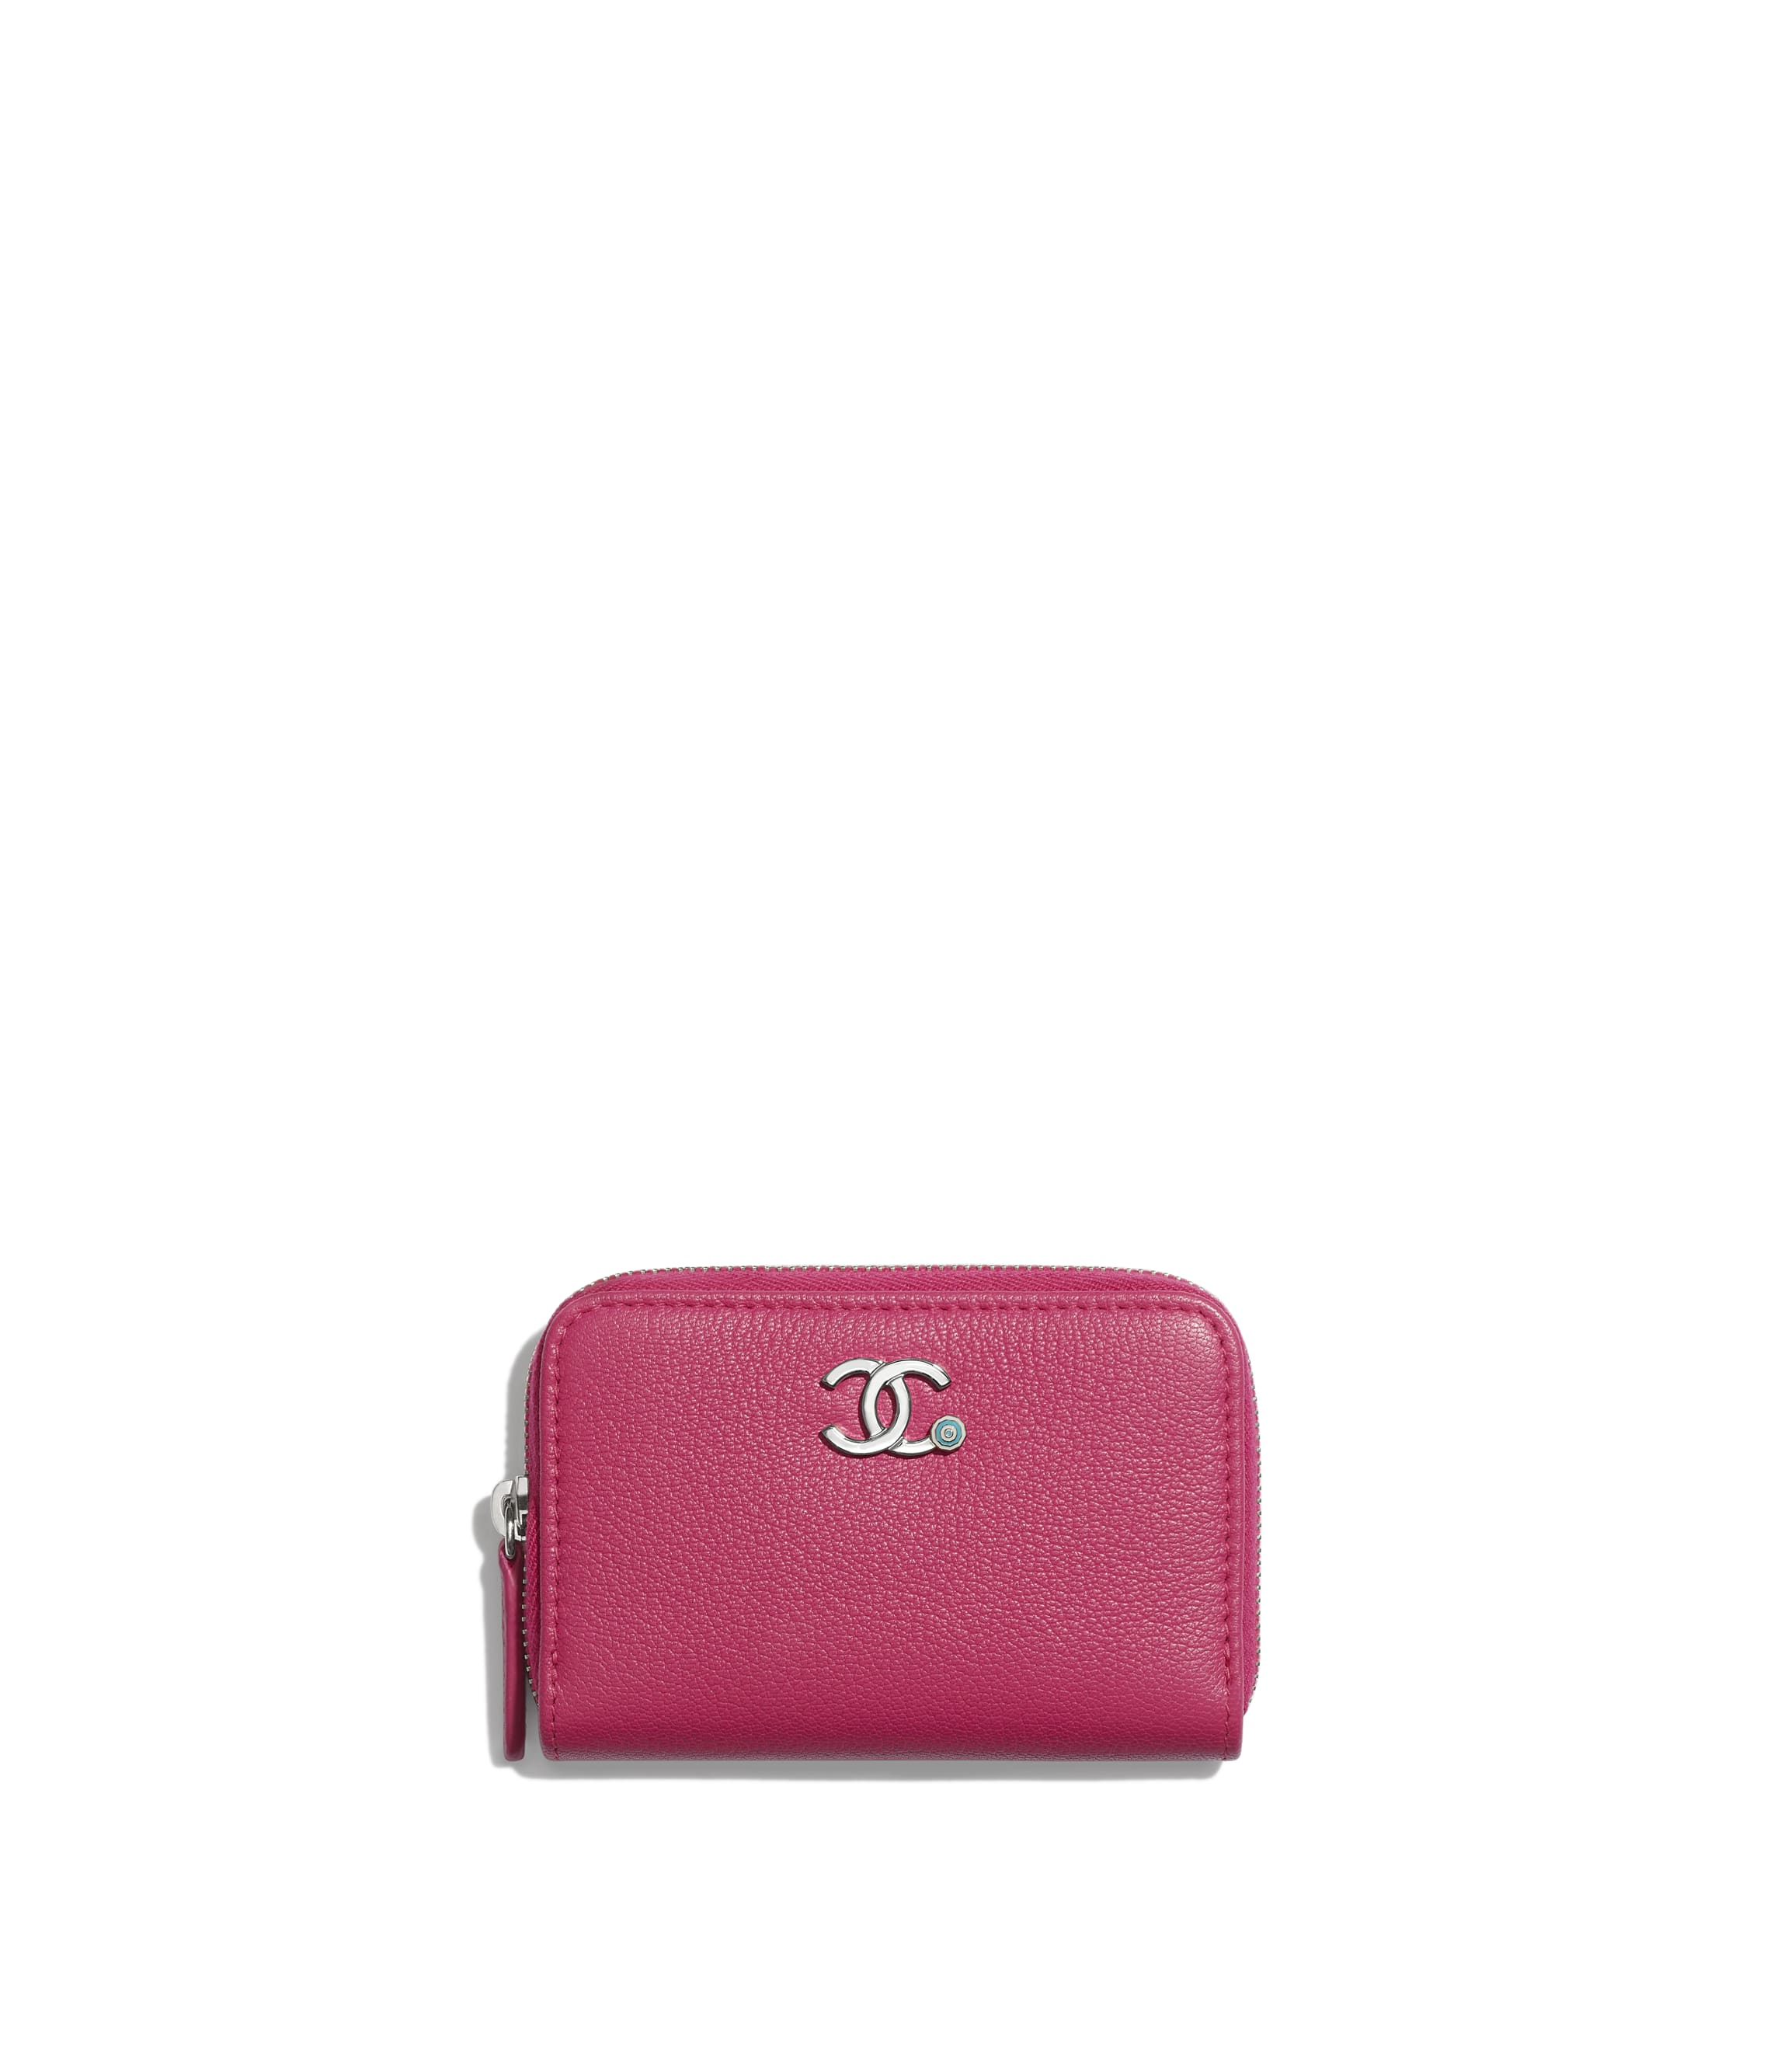 22dcd2ae7afc Coin Purses - Small Leather Goods - CHANEL